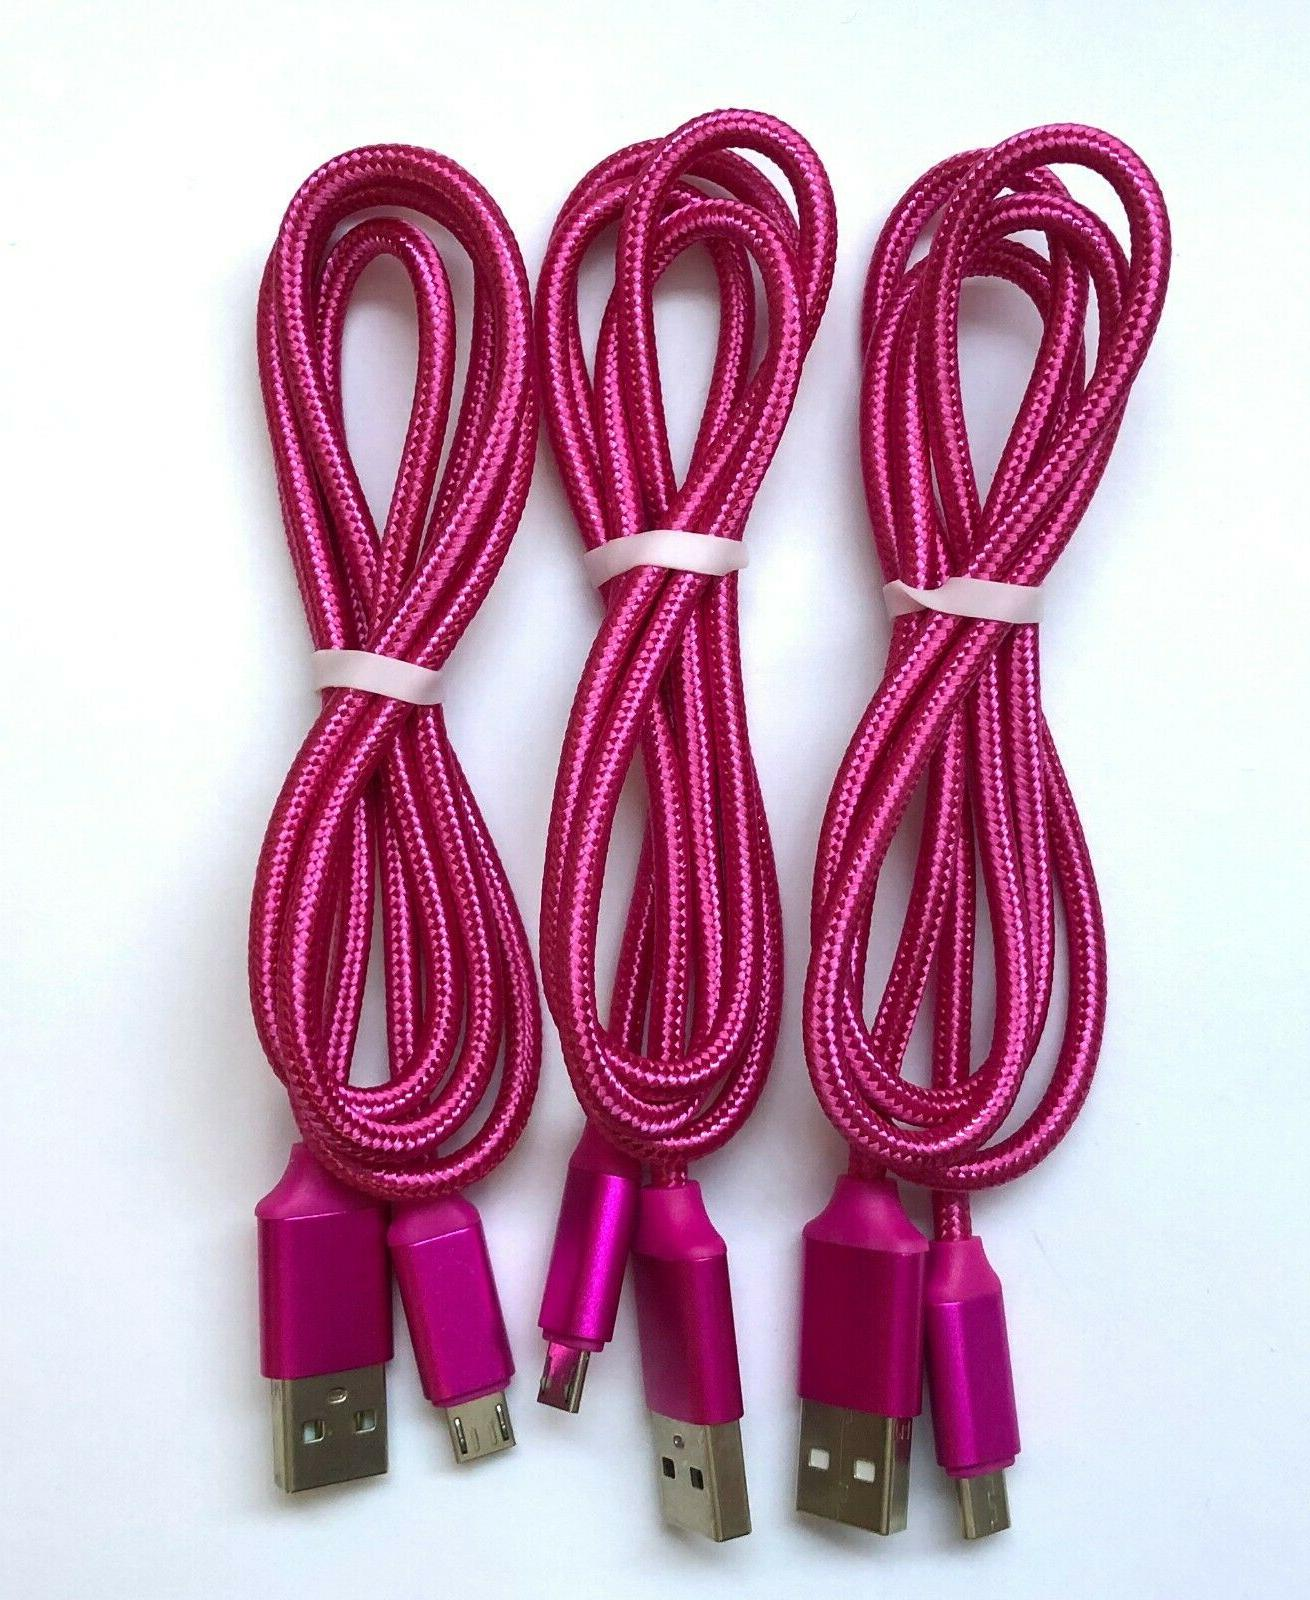 3x Pack Charger Cord Samsung Phone